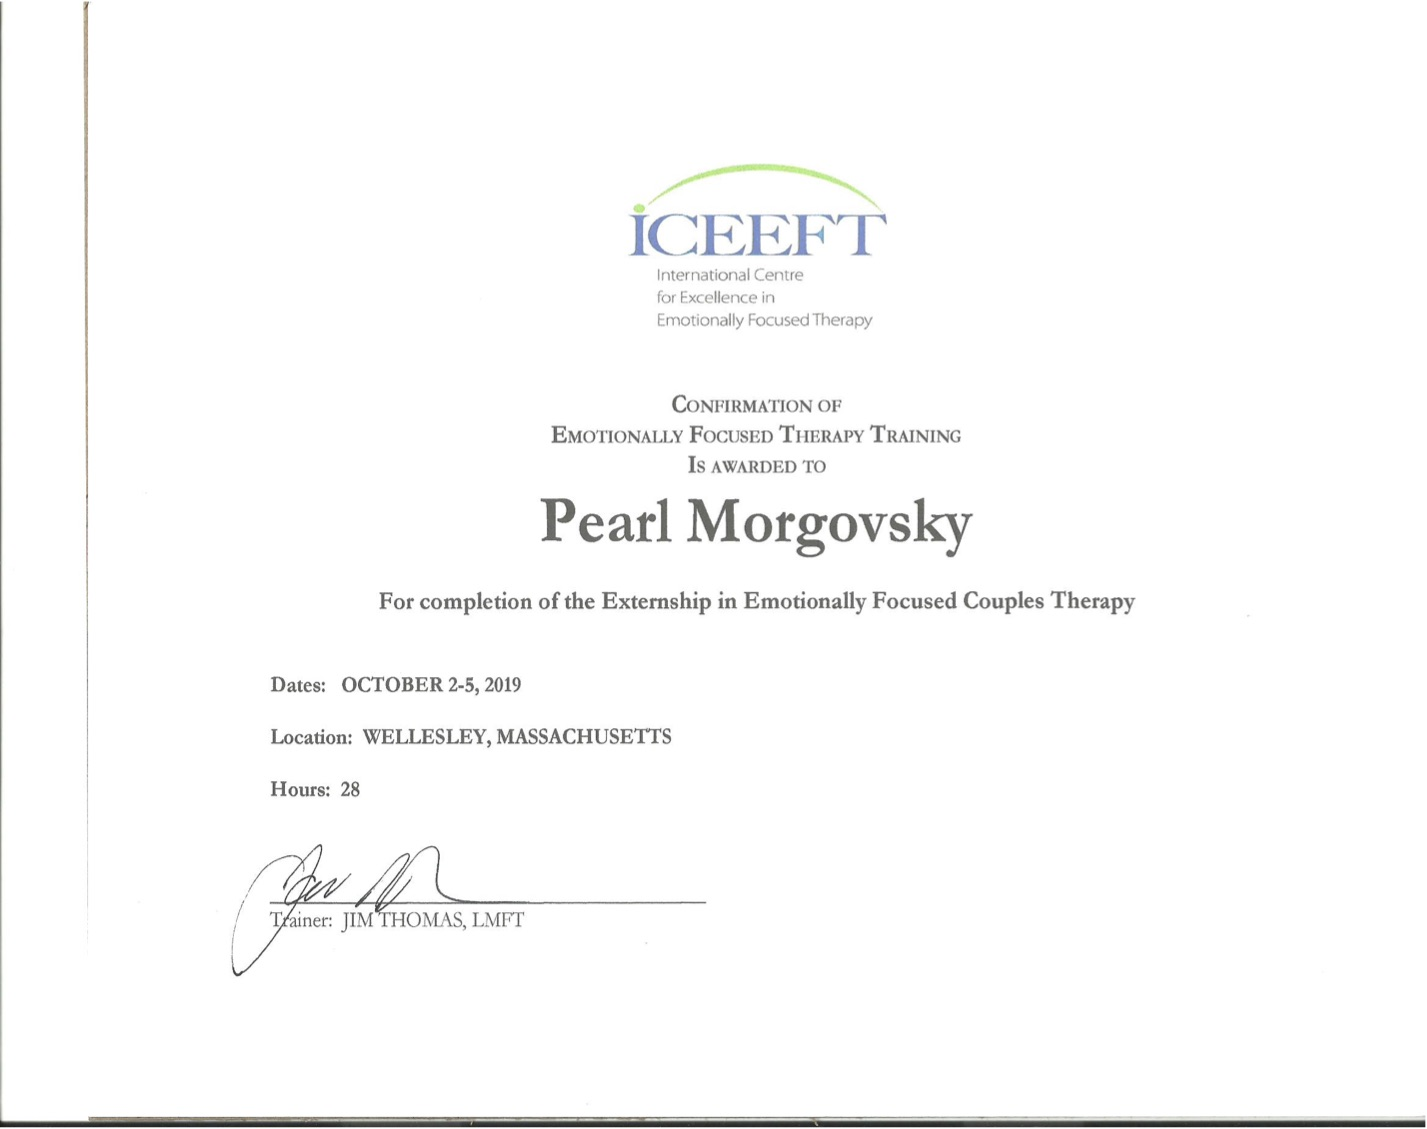 CoC ICEEFT International Centre for Excellence in Emotionally Focused Therapy